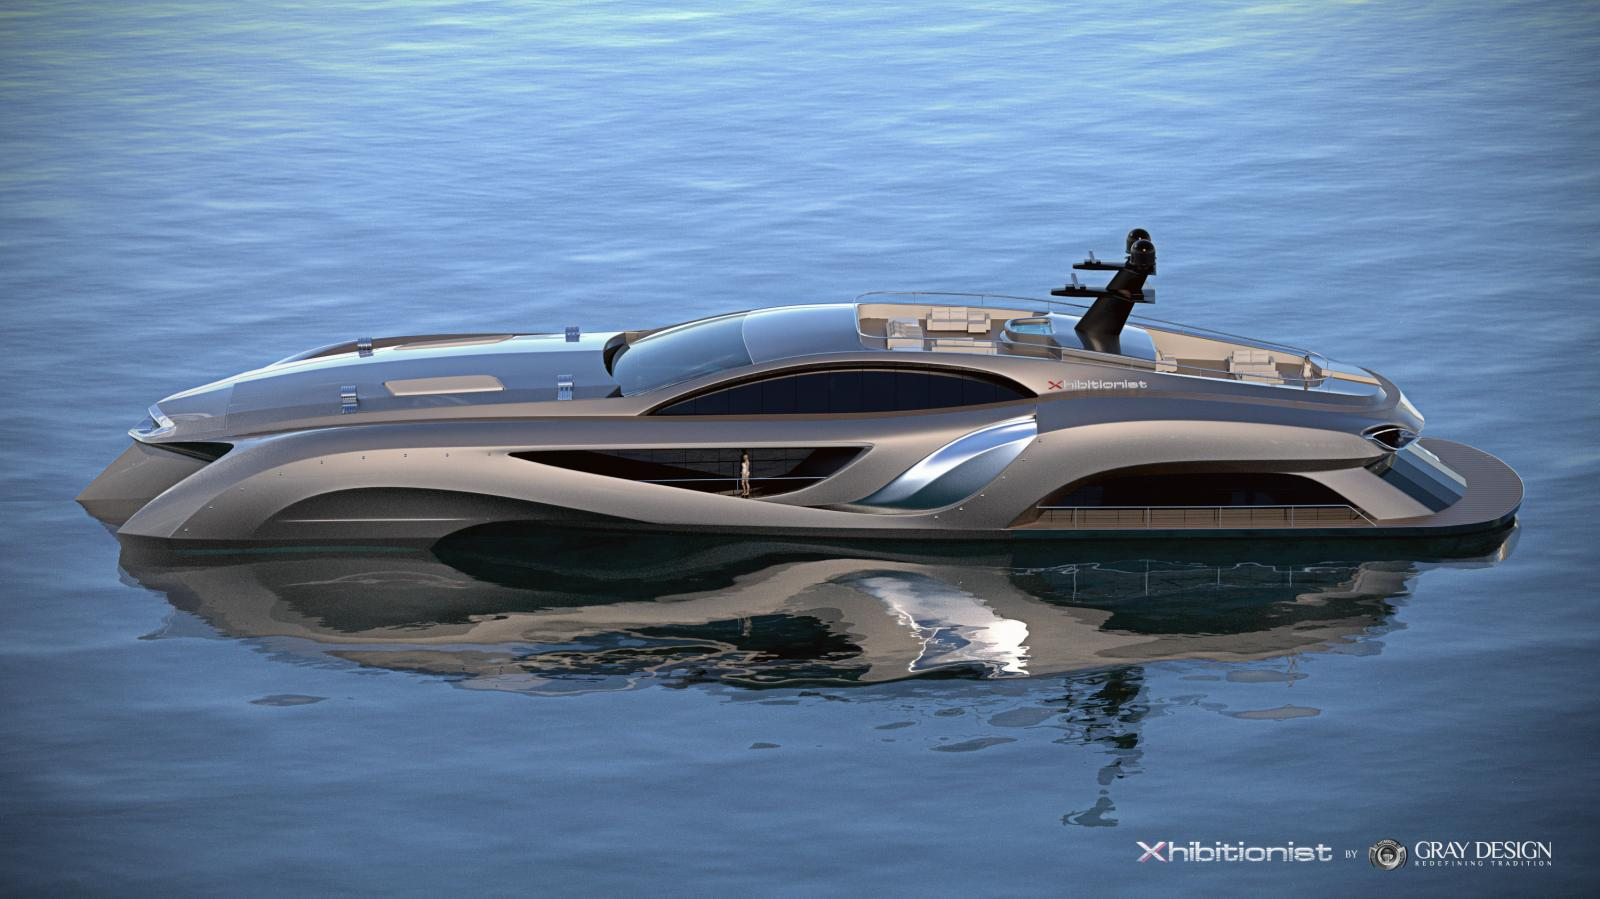 Gray-Design-Xhibitionist-yacht-and-Xhibit-G-car-1